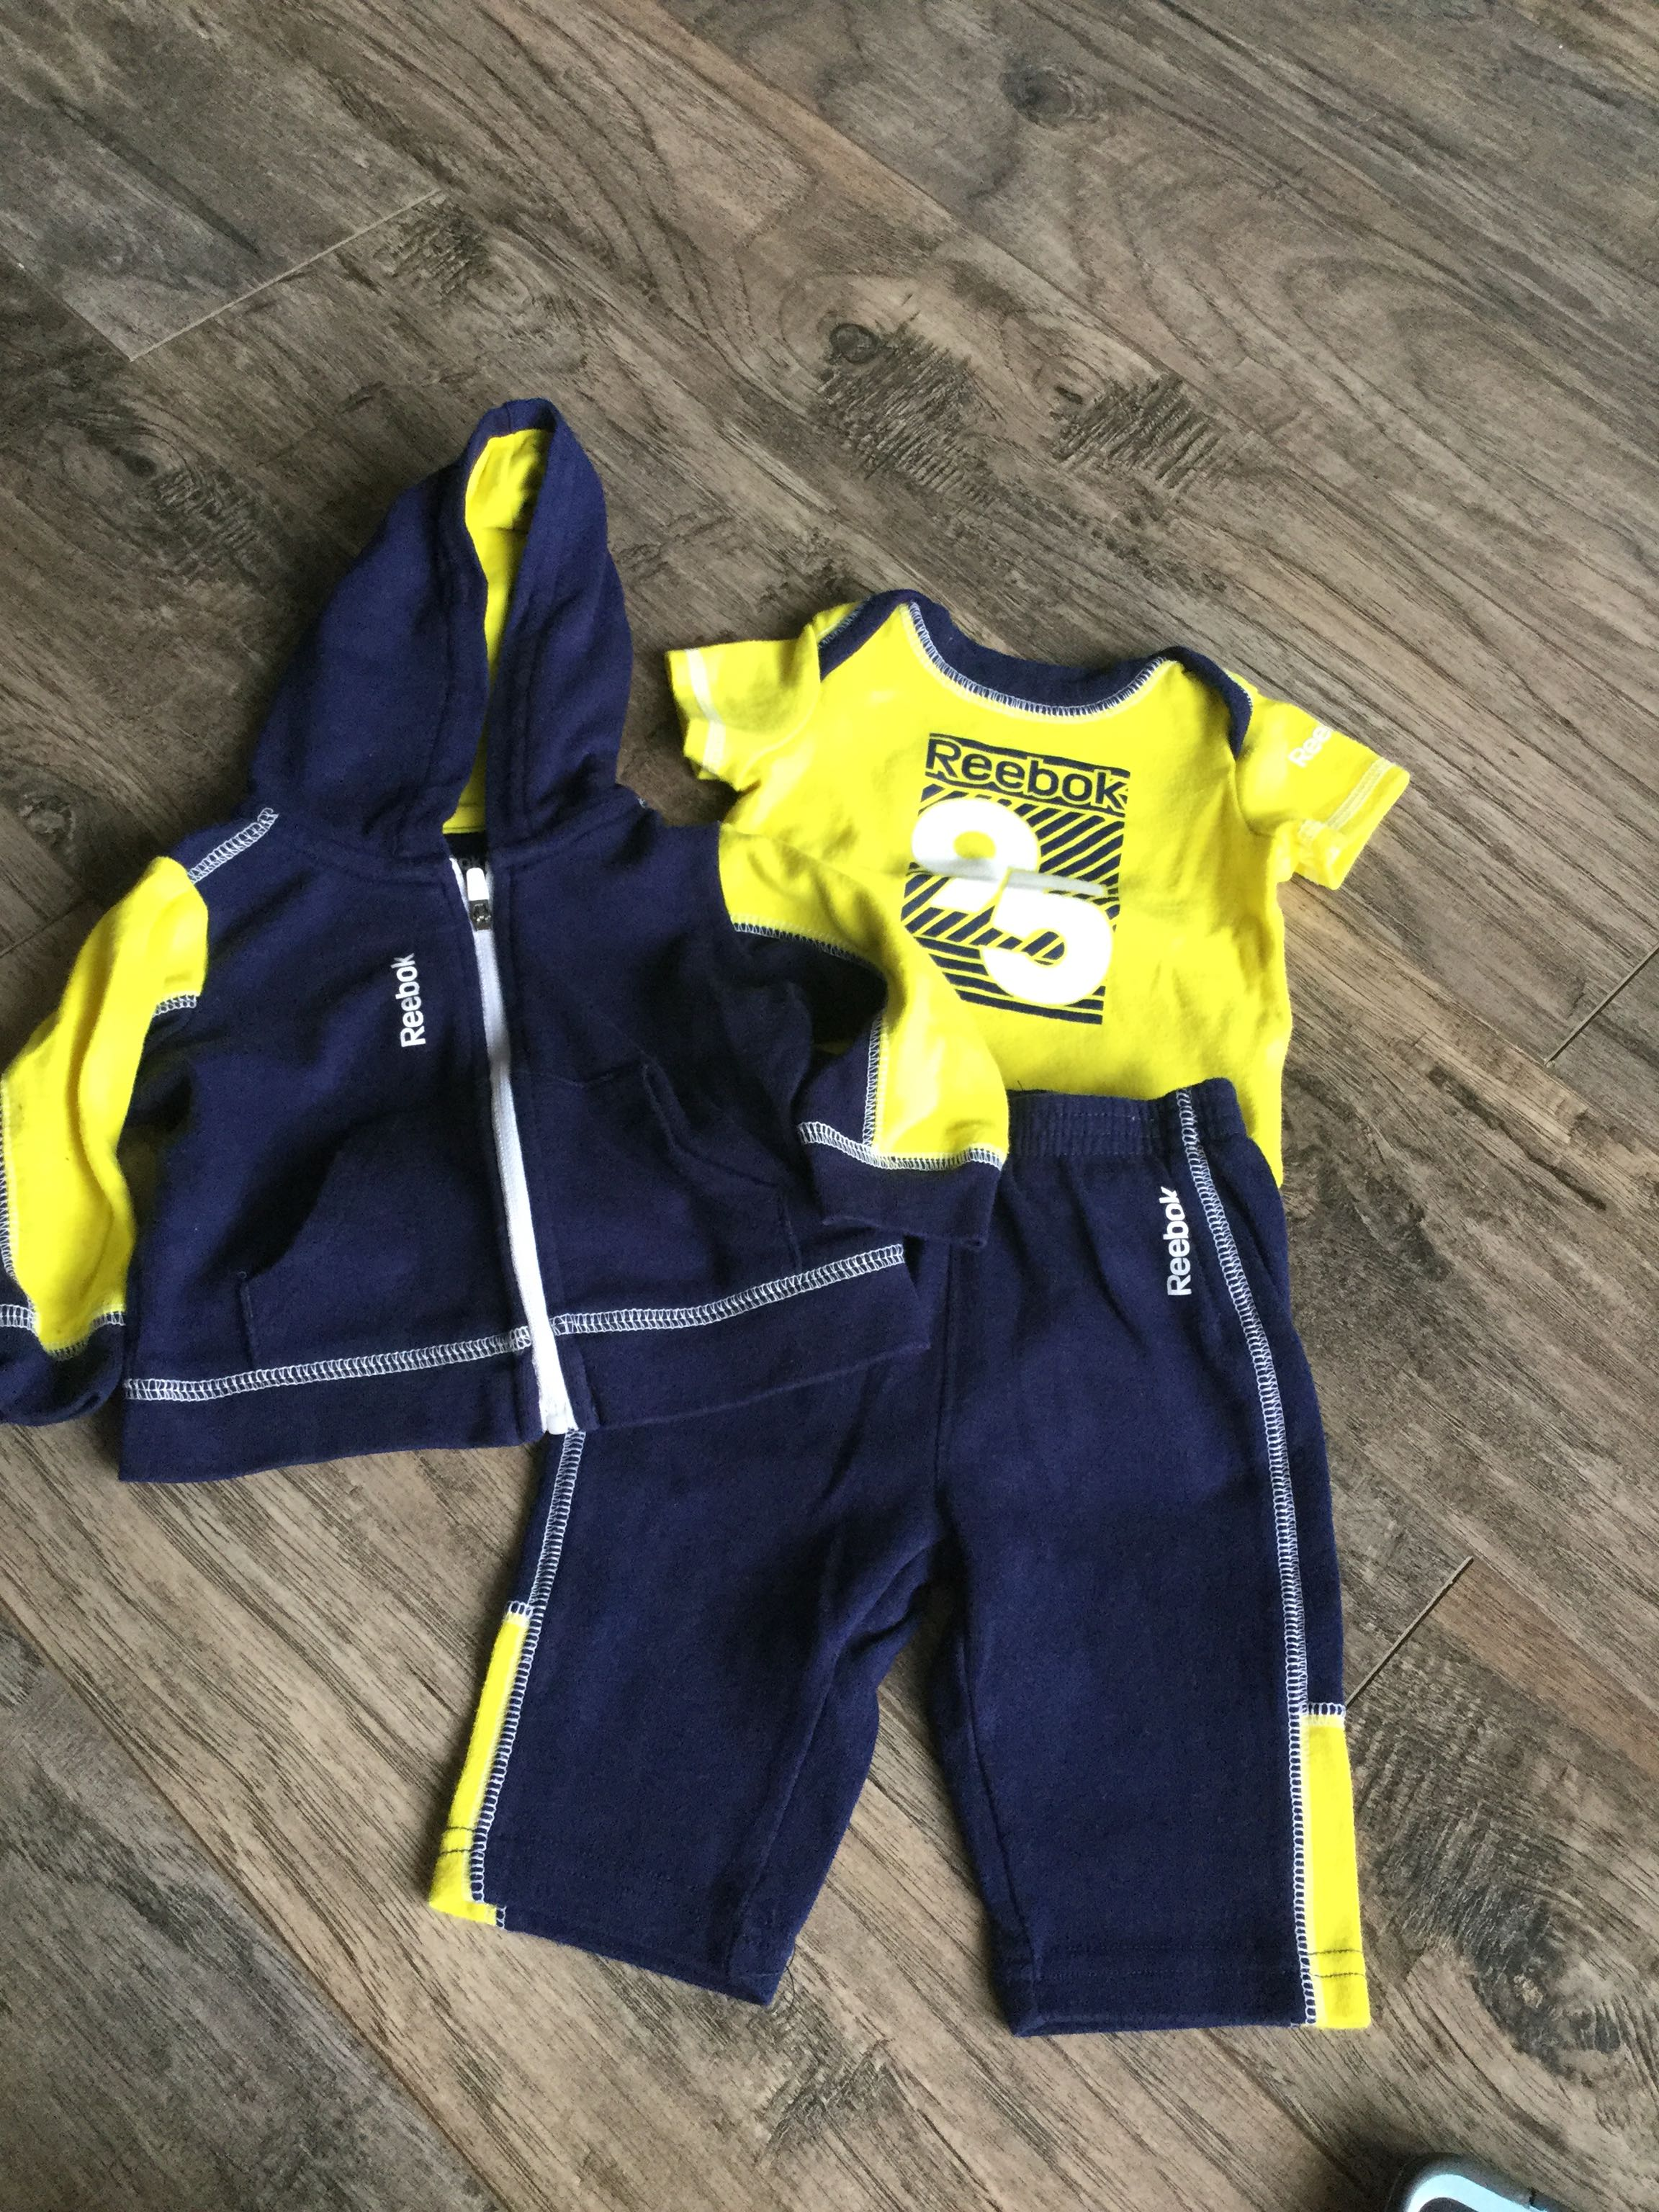 0-3 Month Reebok Outfit